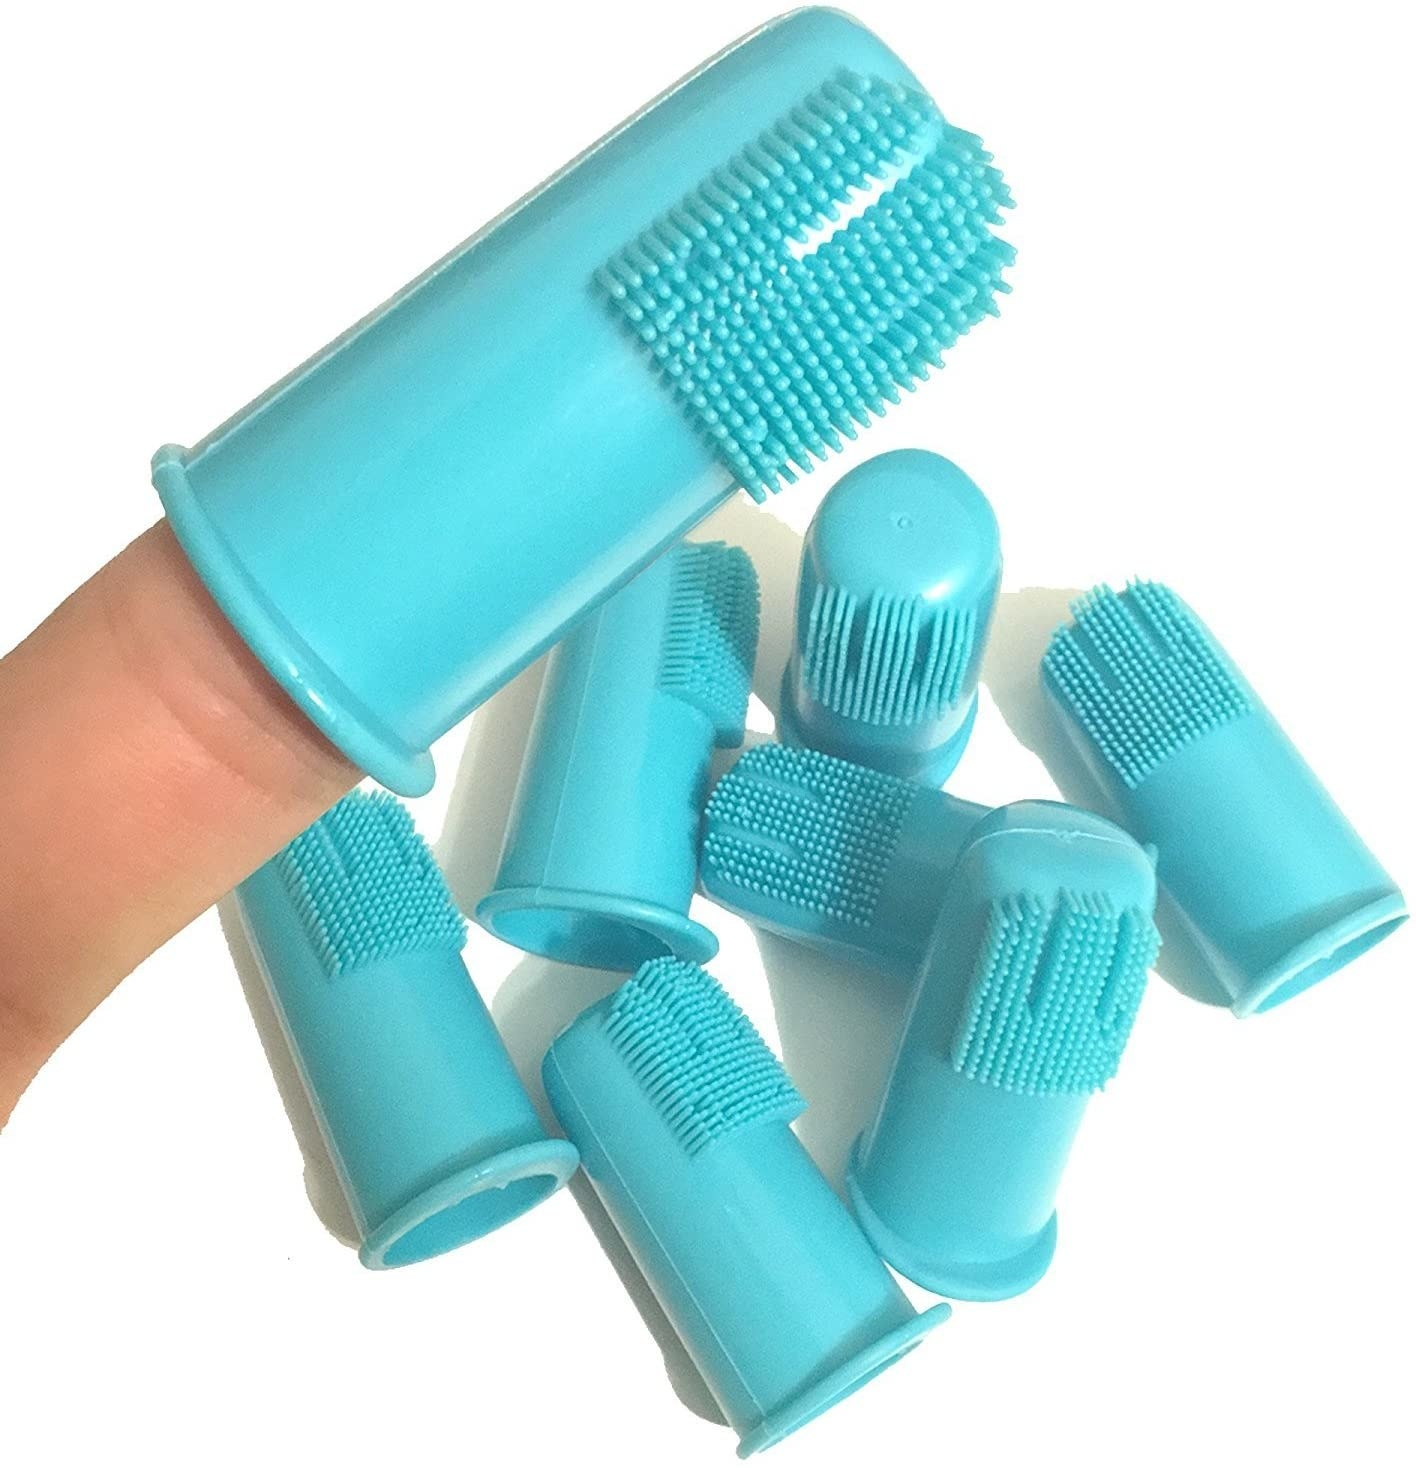 8 blue silicone toothbrush finger caps.